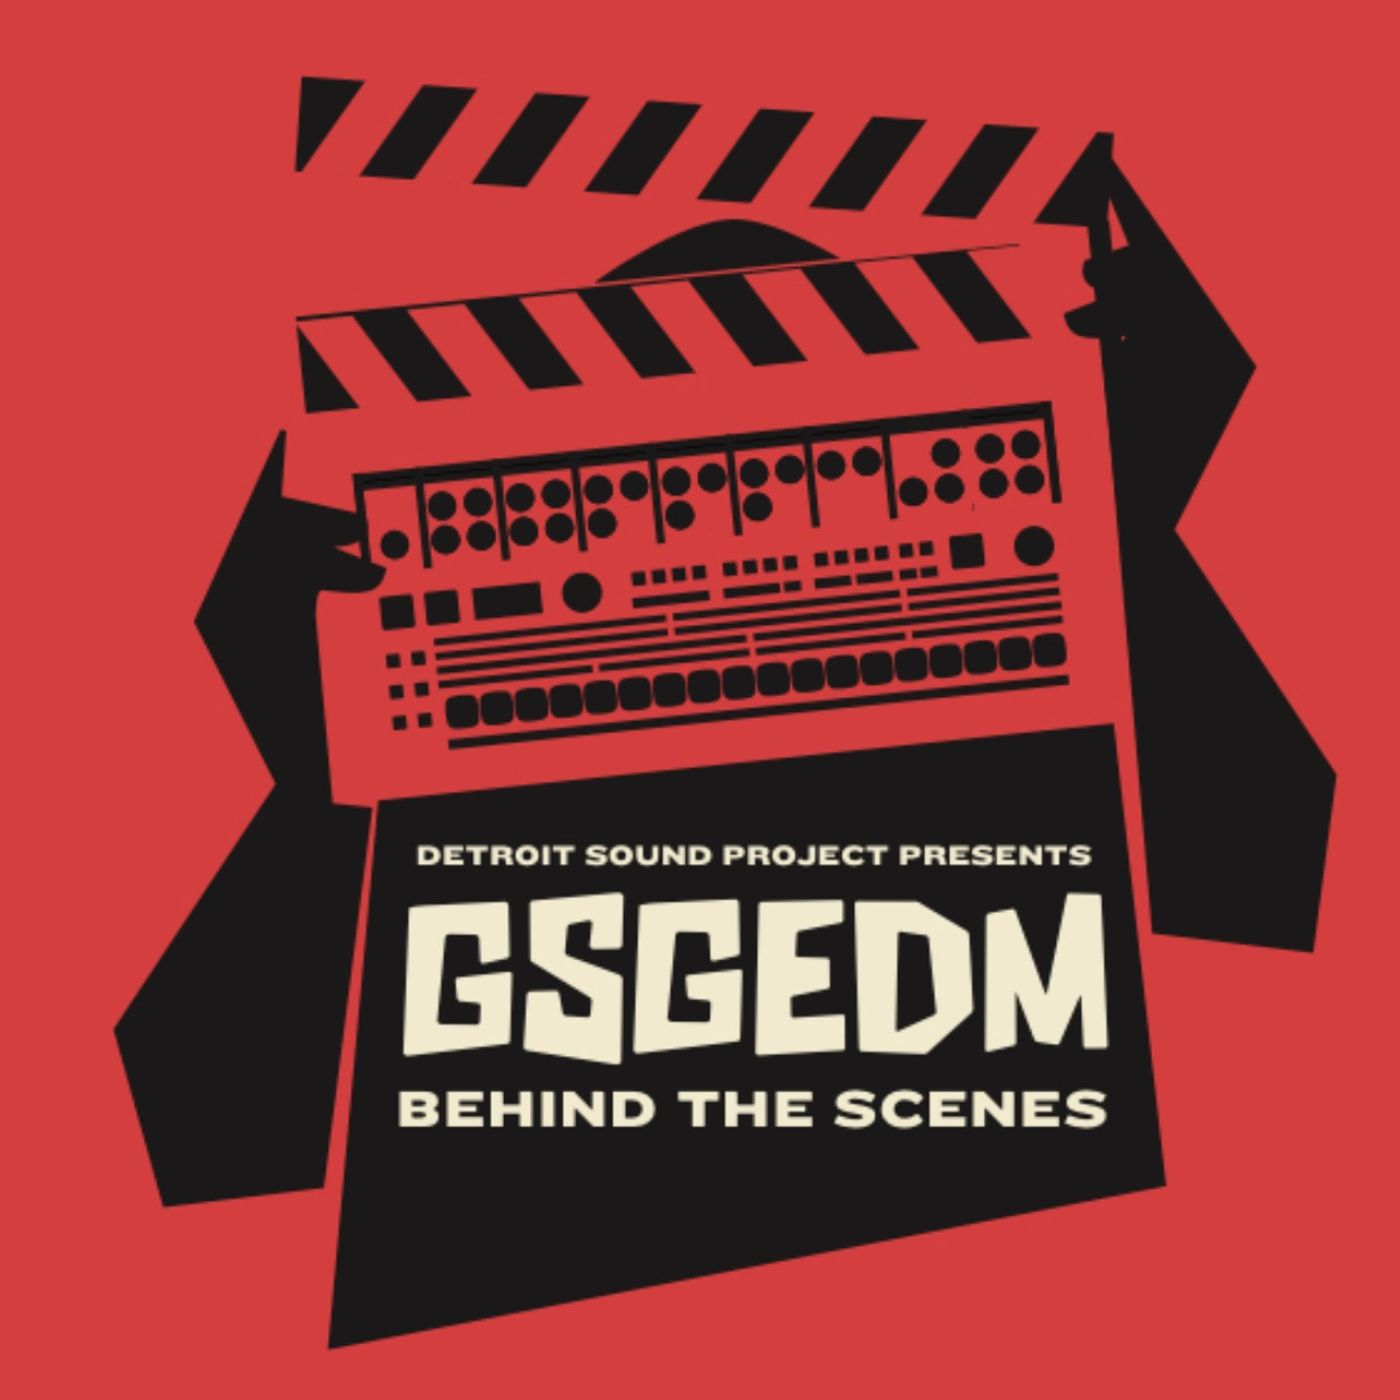 GSGEDM Behind-the-Scenes